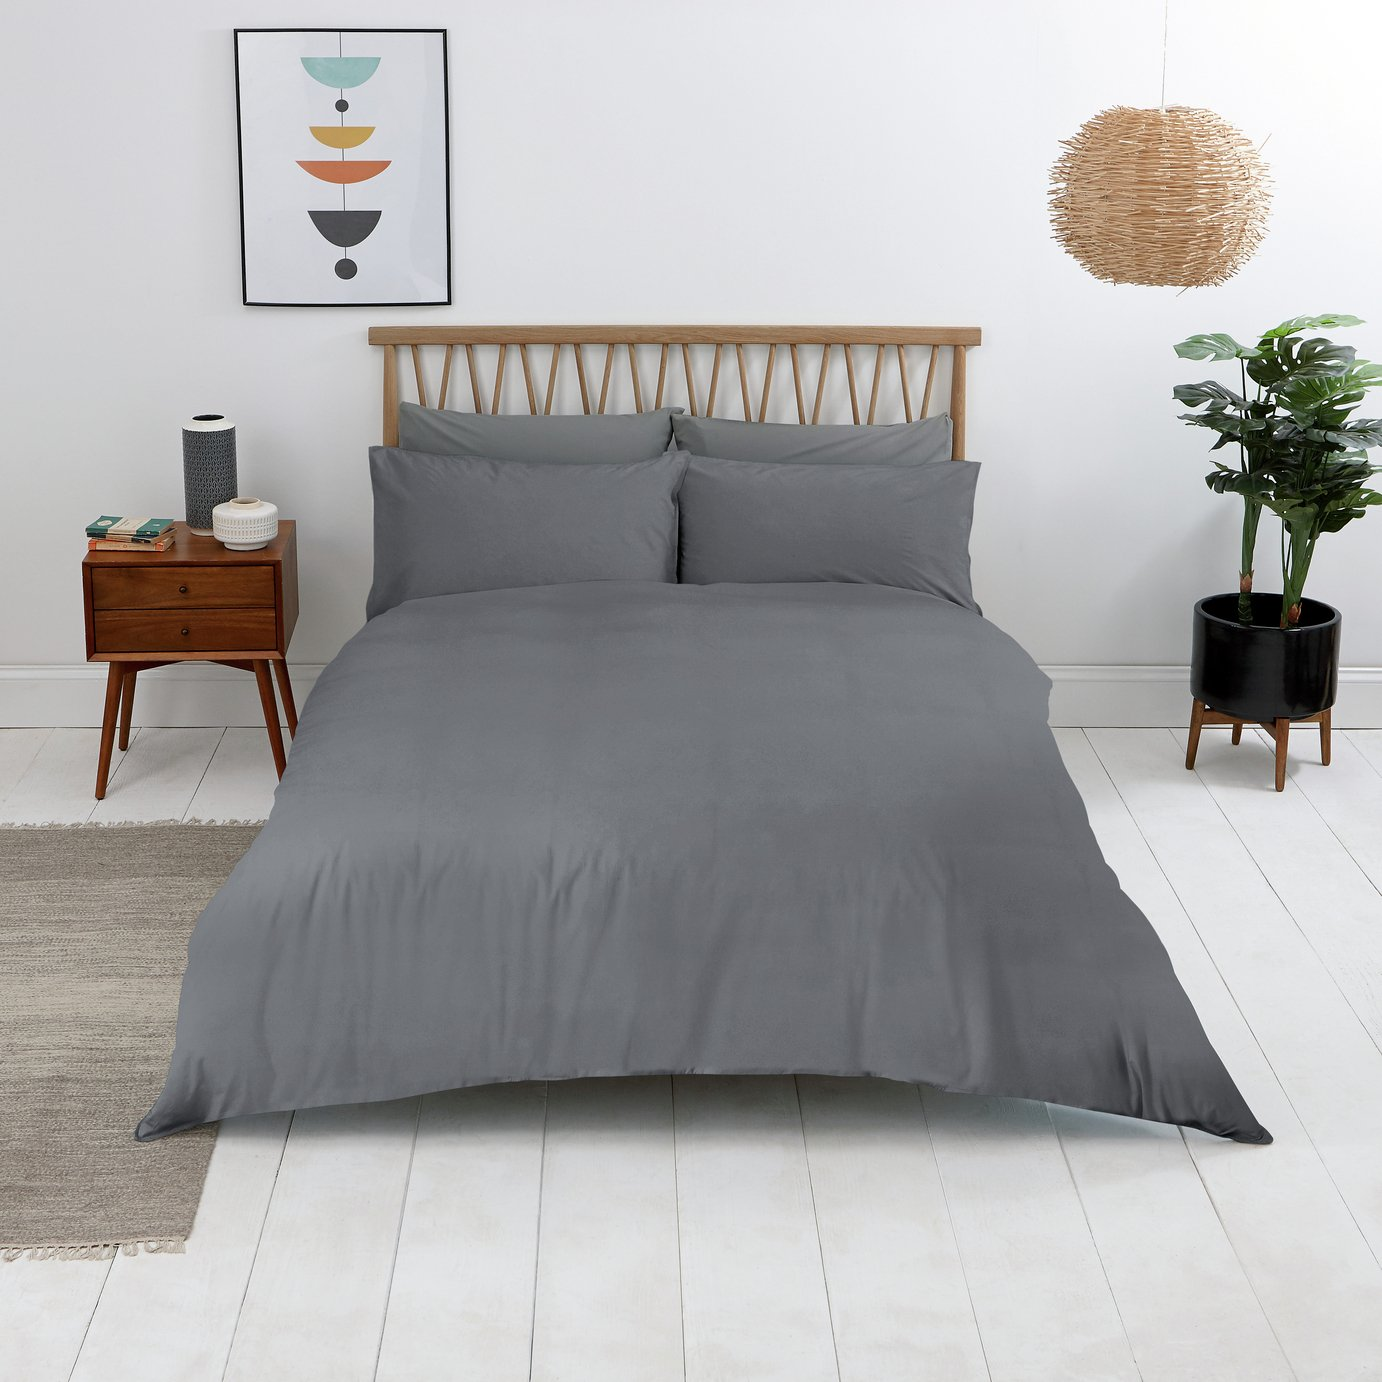 Sainsbury's Home Wash Cotton Bedding Set